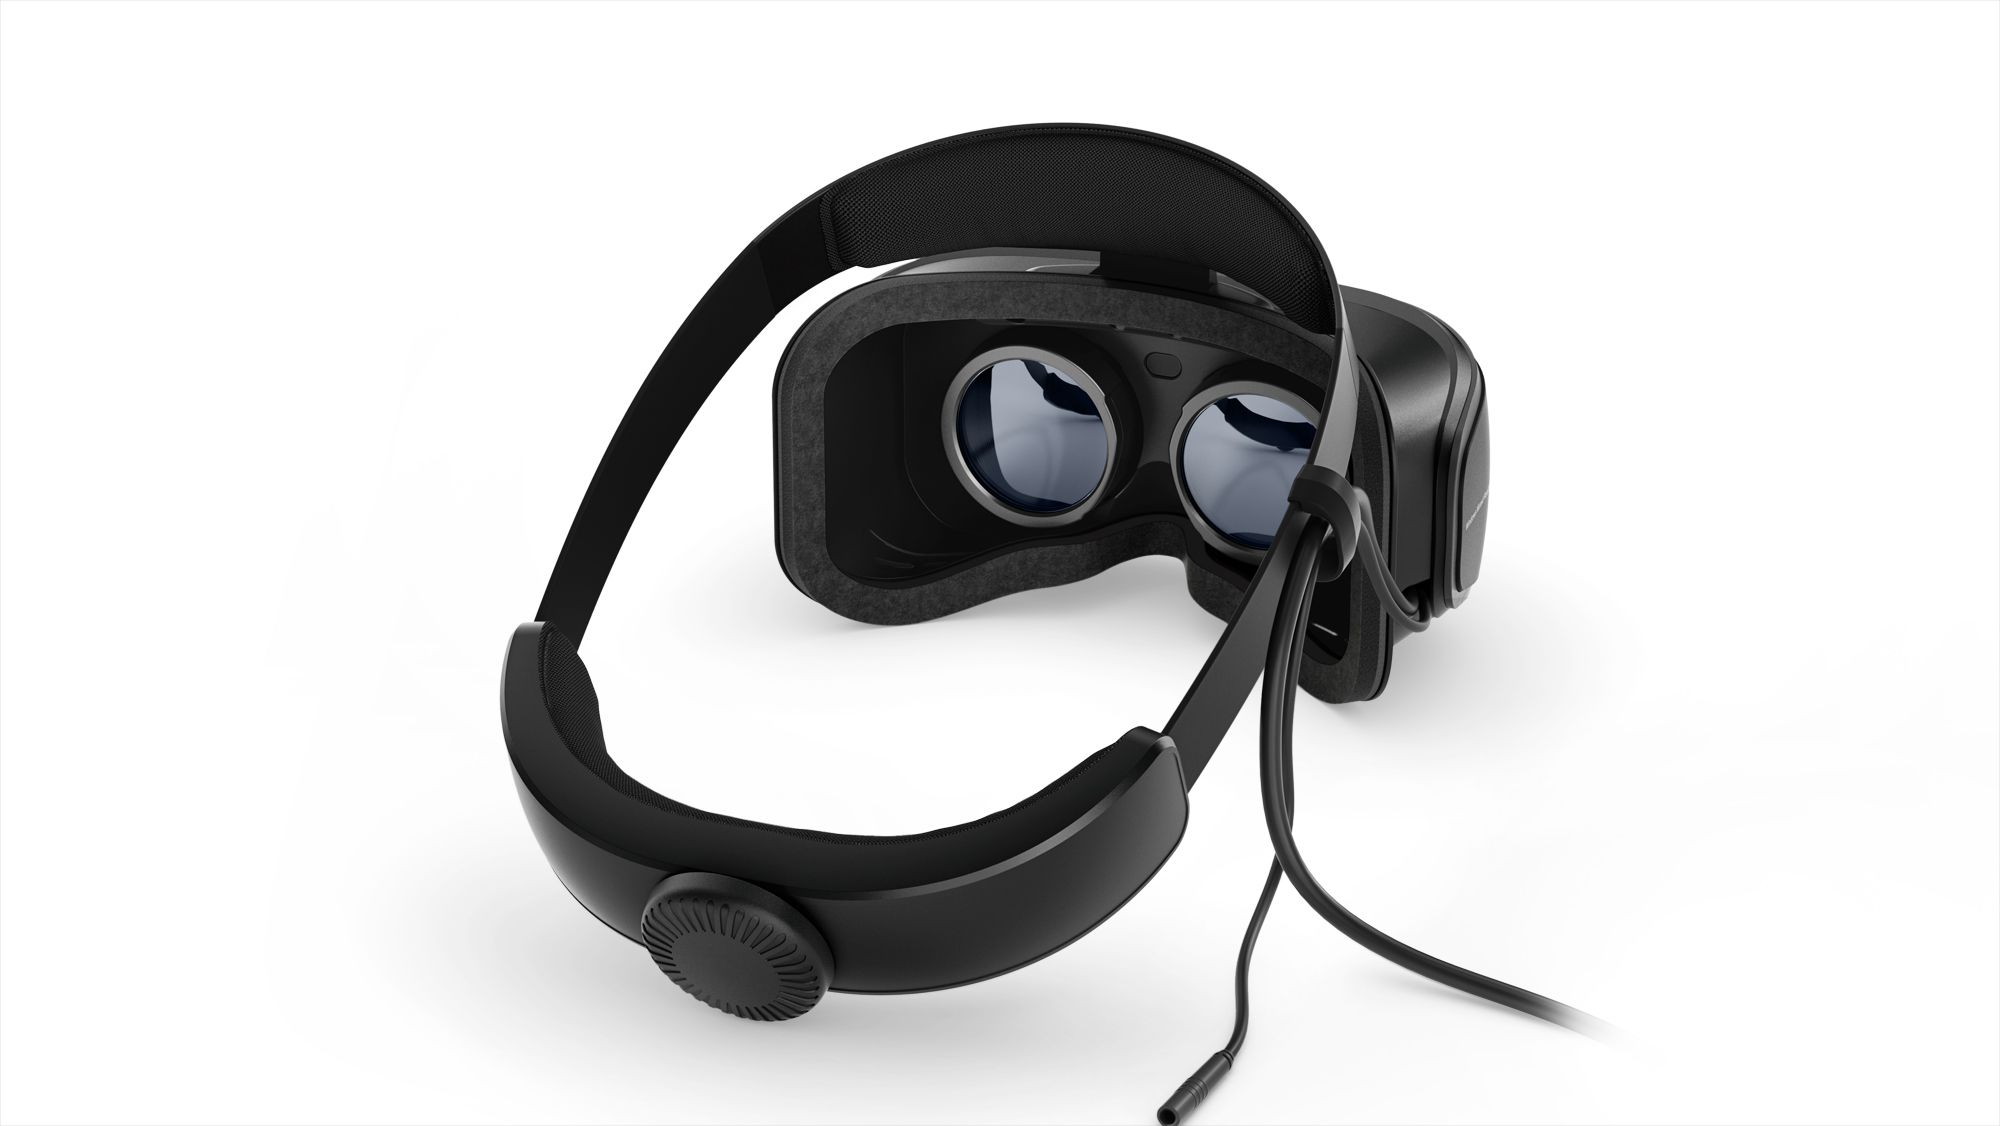 Lenovo's Explorer Mixed Reality headset starts at just $349.99